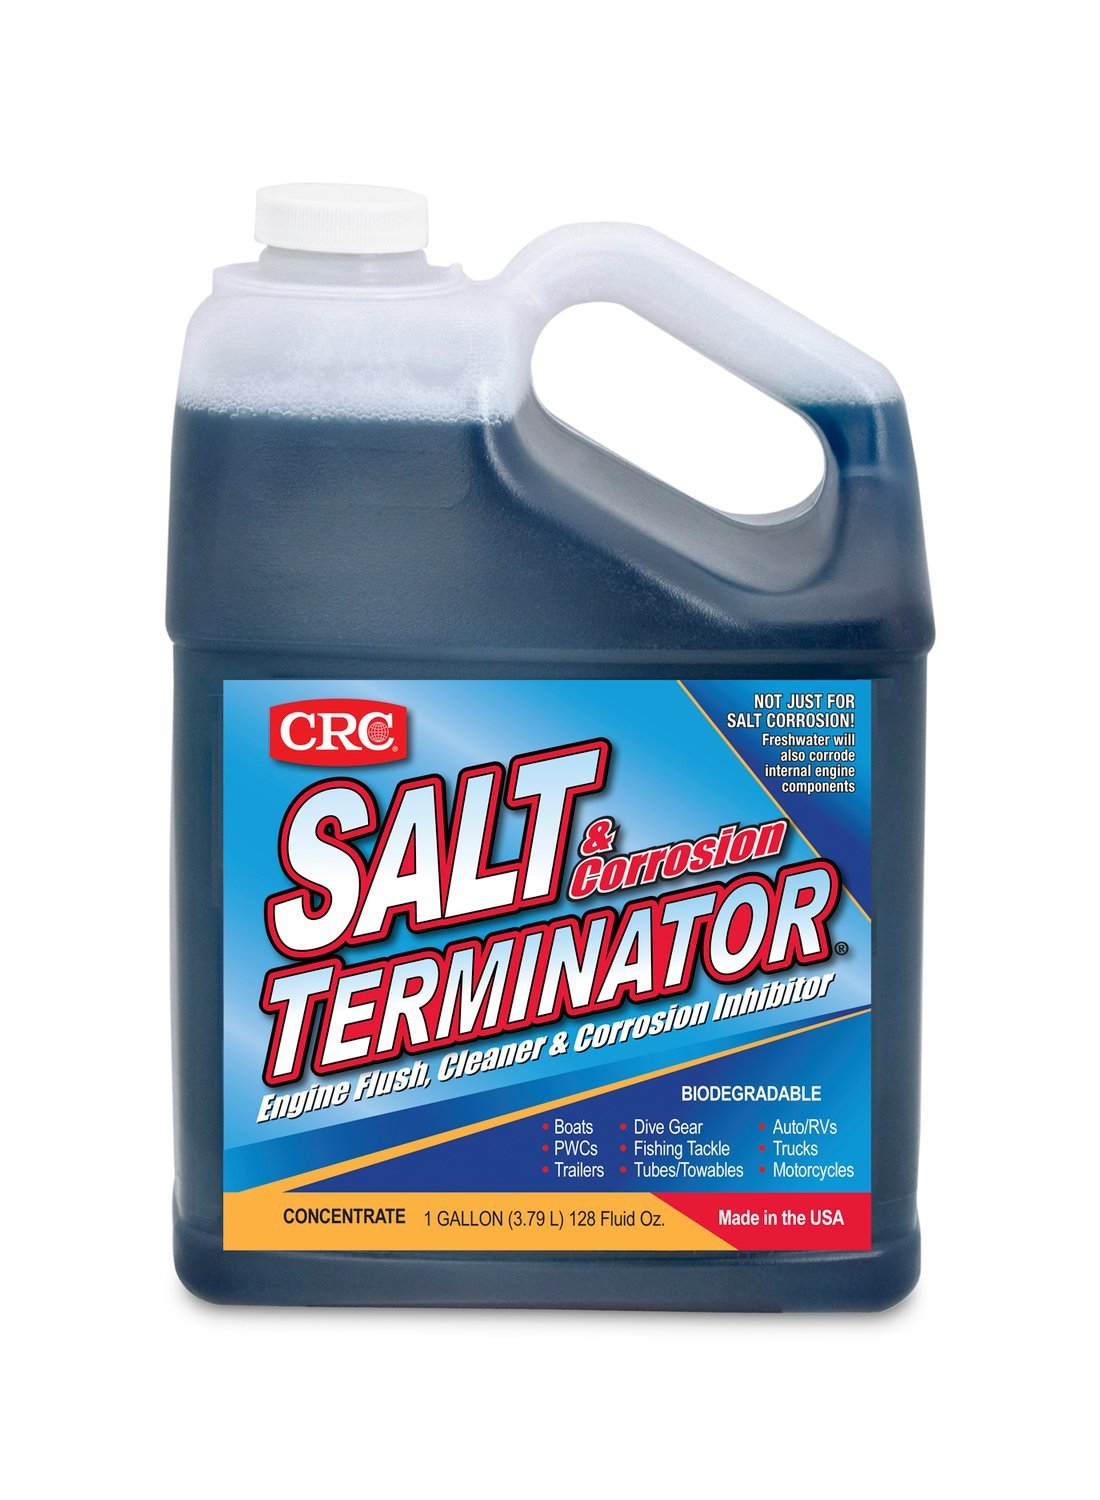 CRC (SX128-6PK) Salt Terminator Engine Flush, Cleaner and Corrosion Inhibitor - 128 oz., (Pack of 6) by CRC